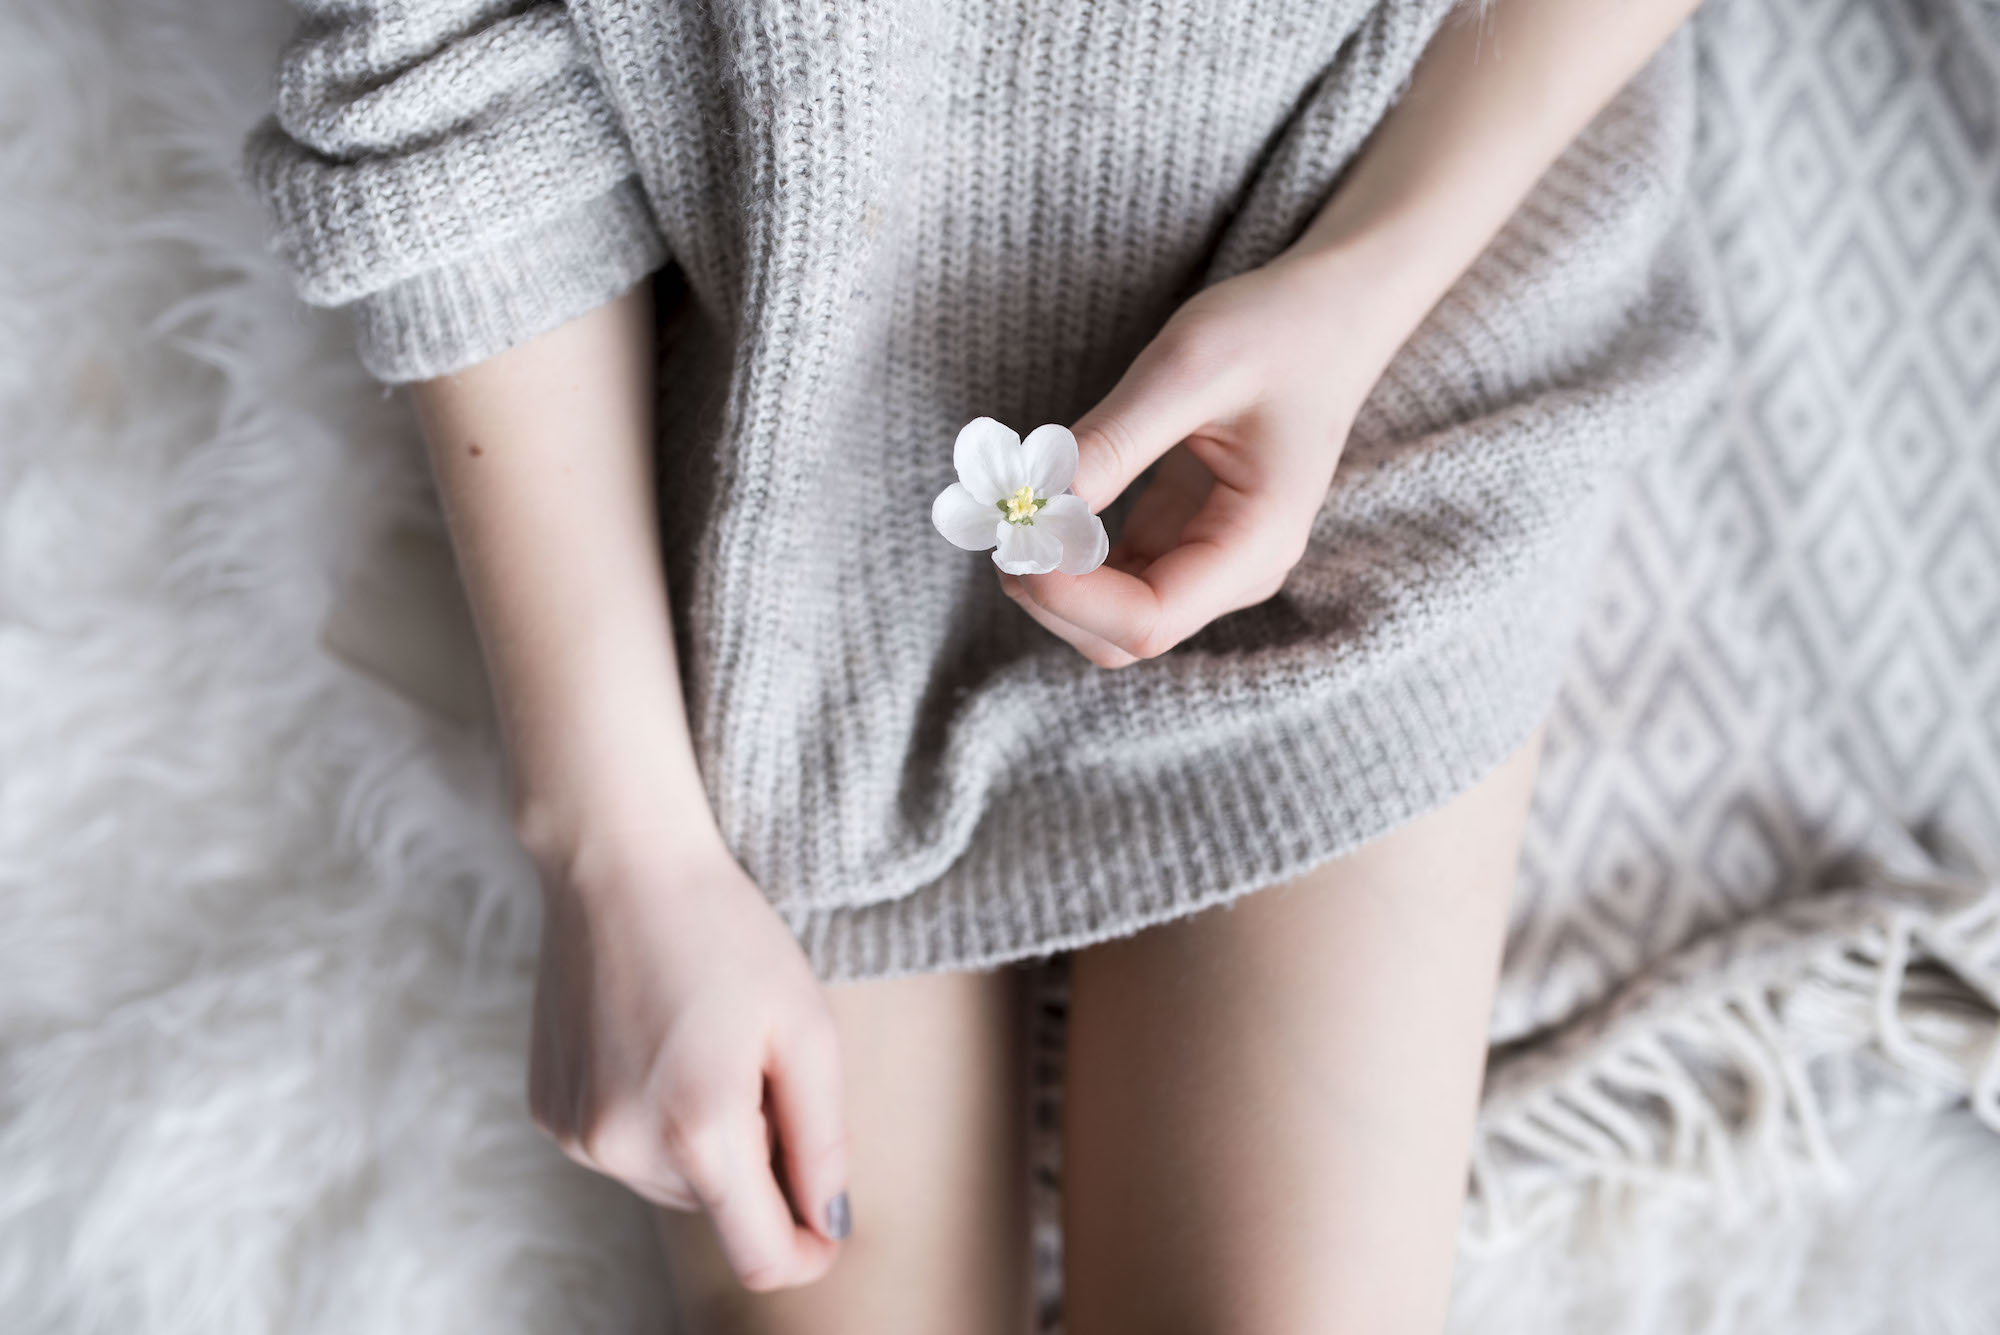 Rituals Sakura Let Life Blossom - Tiphaine Marie, Switzerland based fashion blog